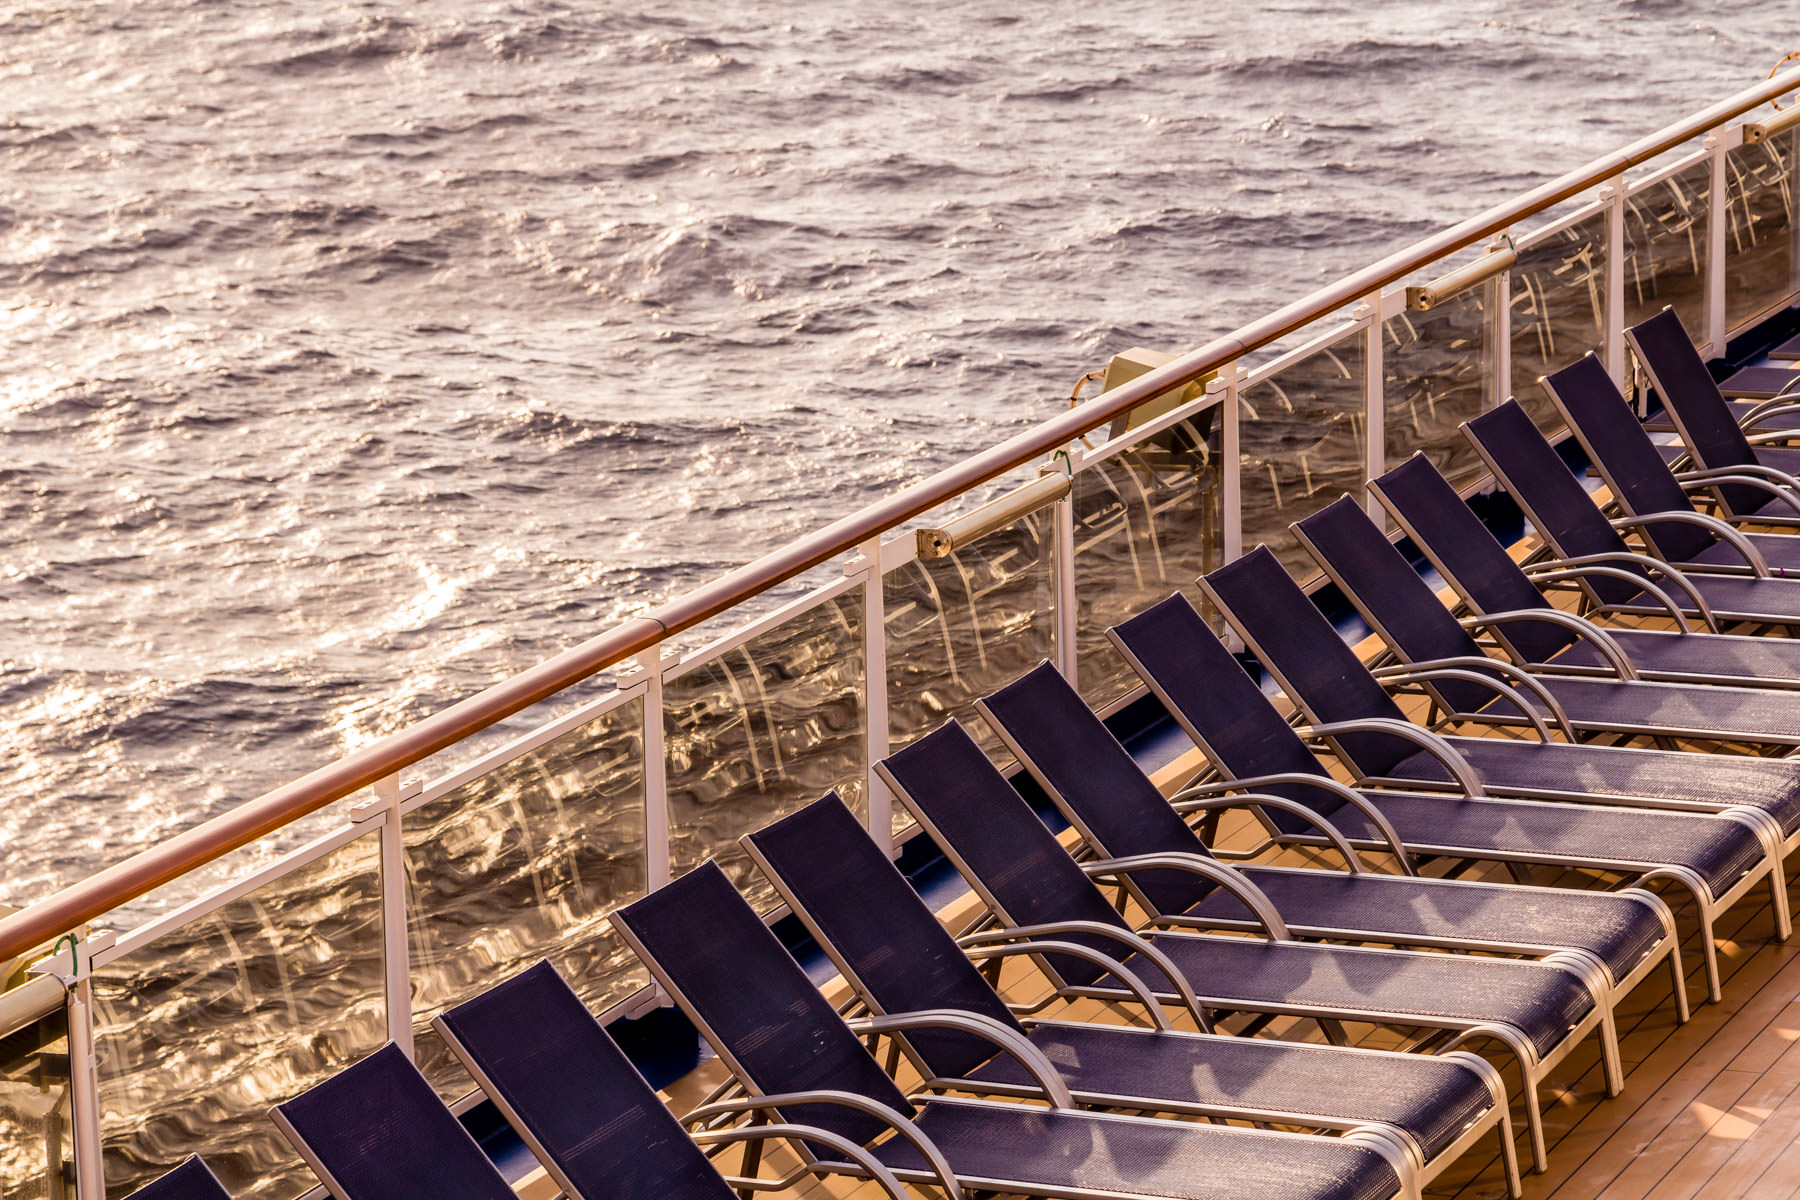 Lounge chairs greet the morning sun aboard the cruise ship Carnival Magic, somewhere in the Gulf of Mexico.